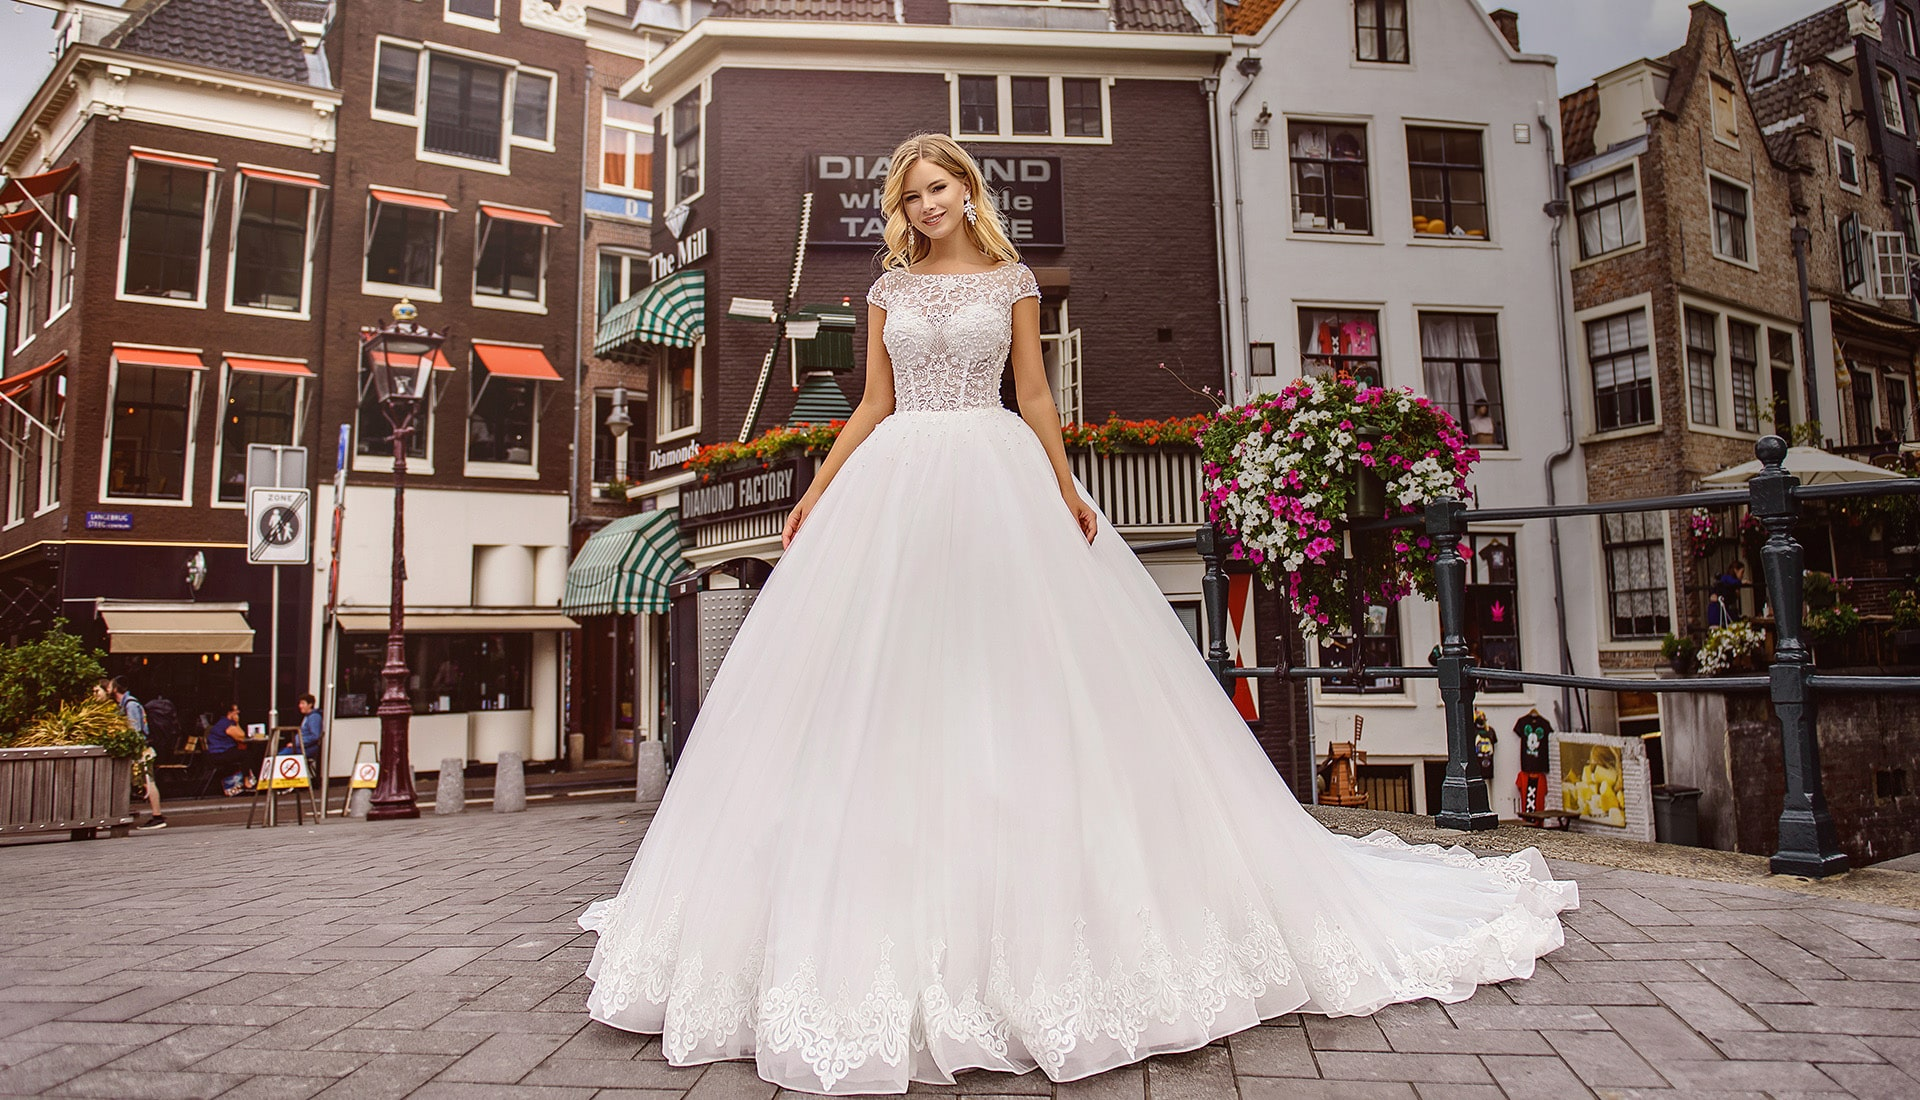 Pentelei Buy Wedding Dresses Wholesale From The Manufacturer In